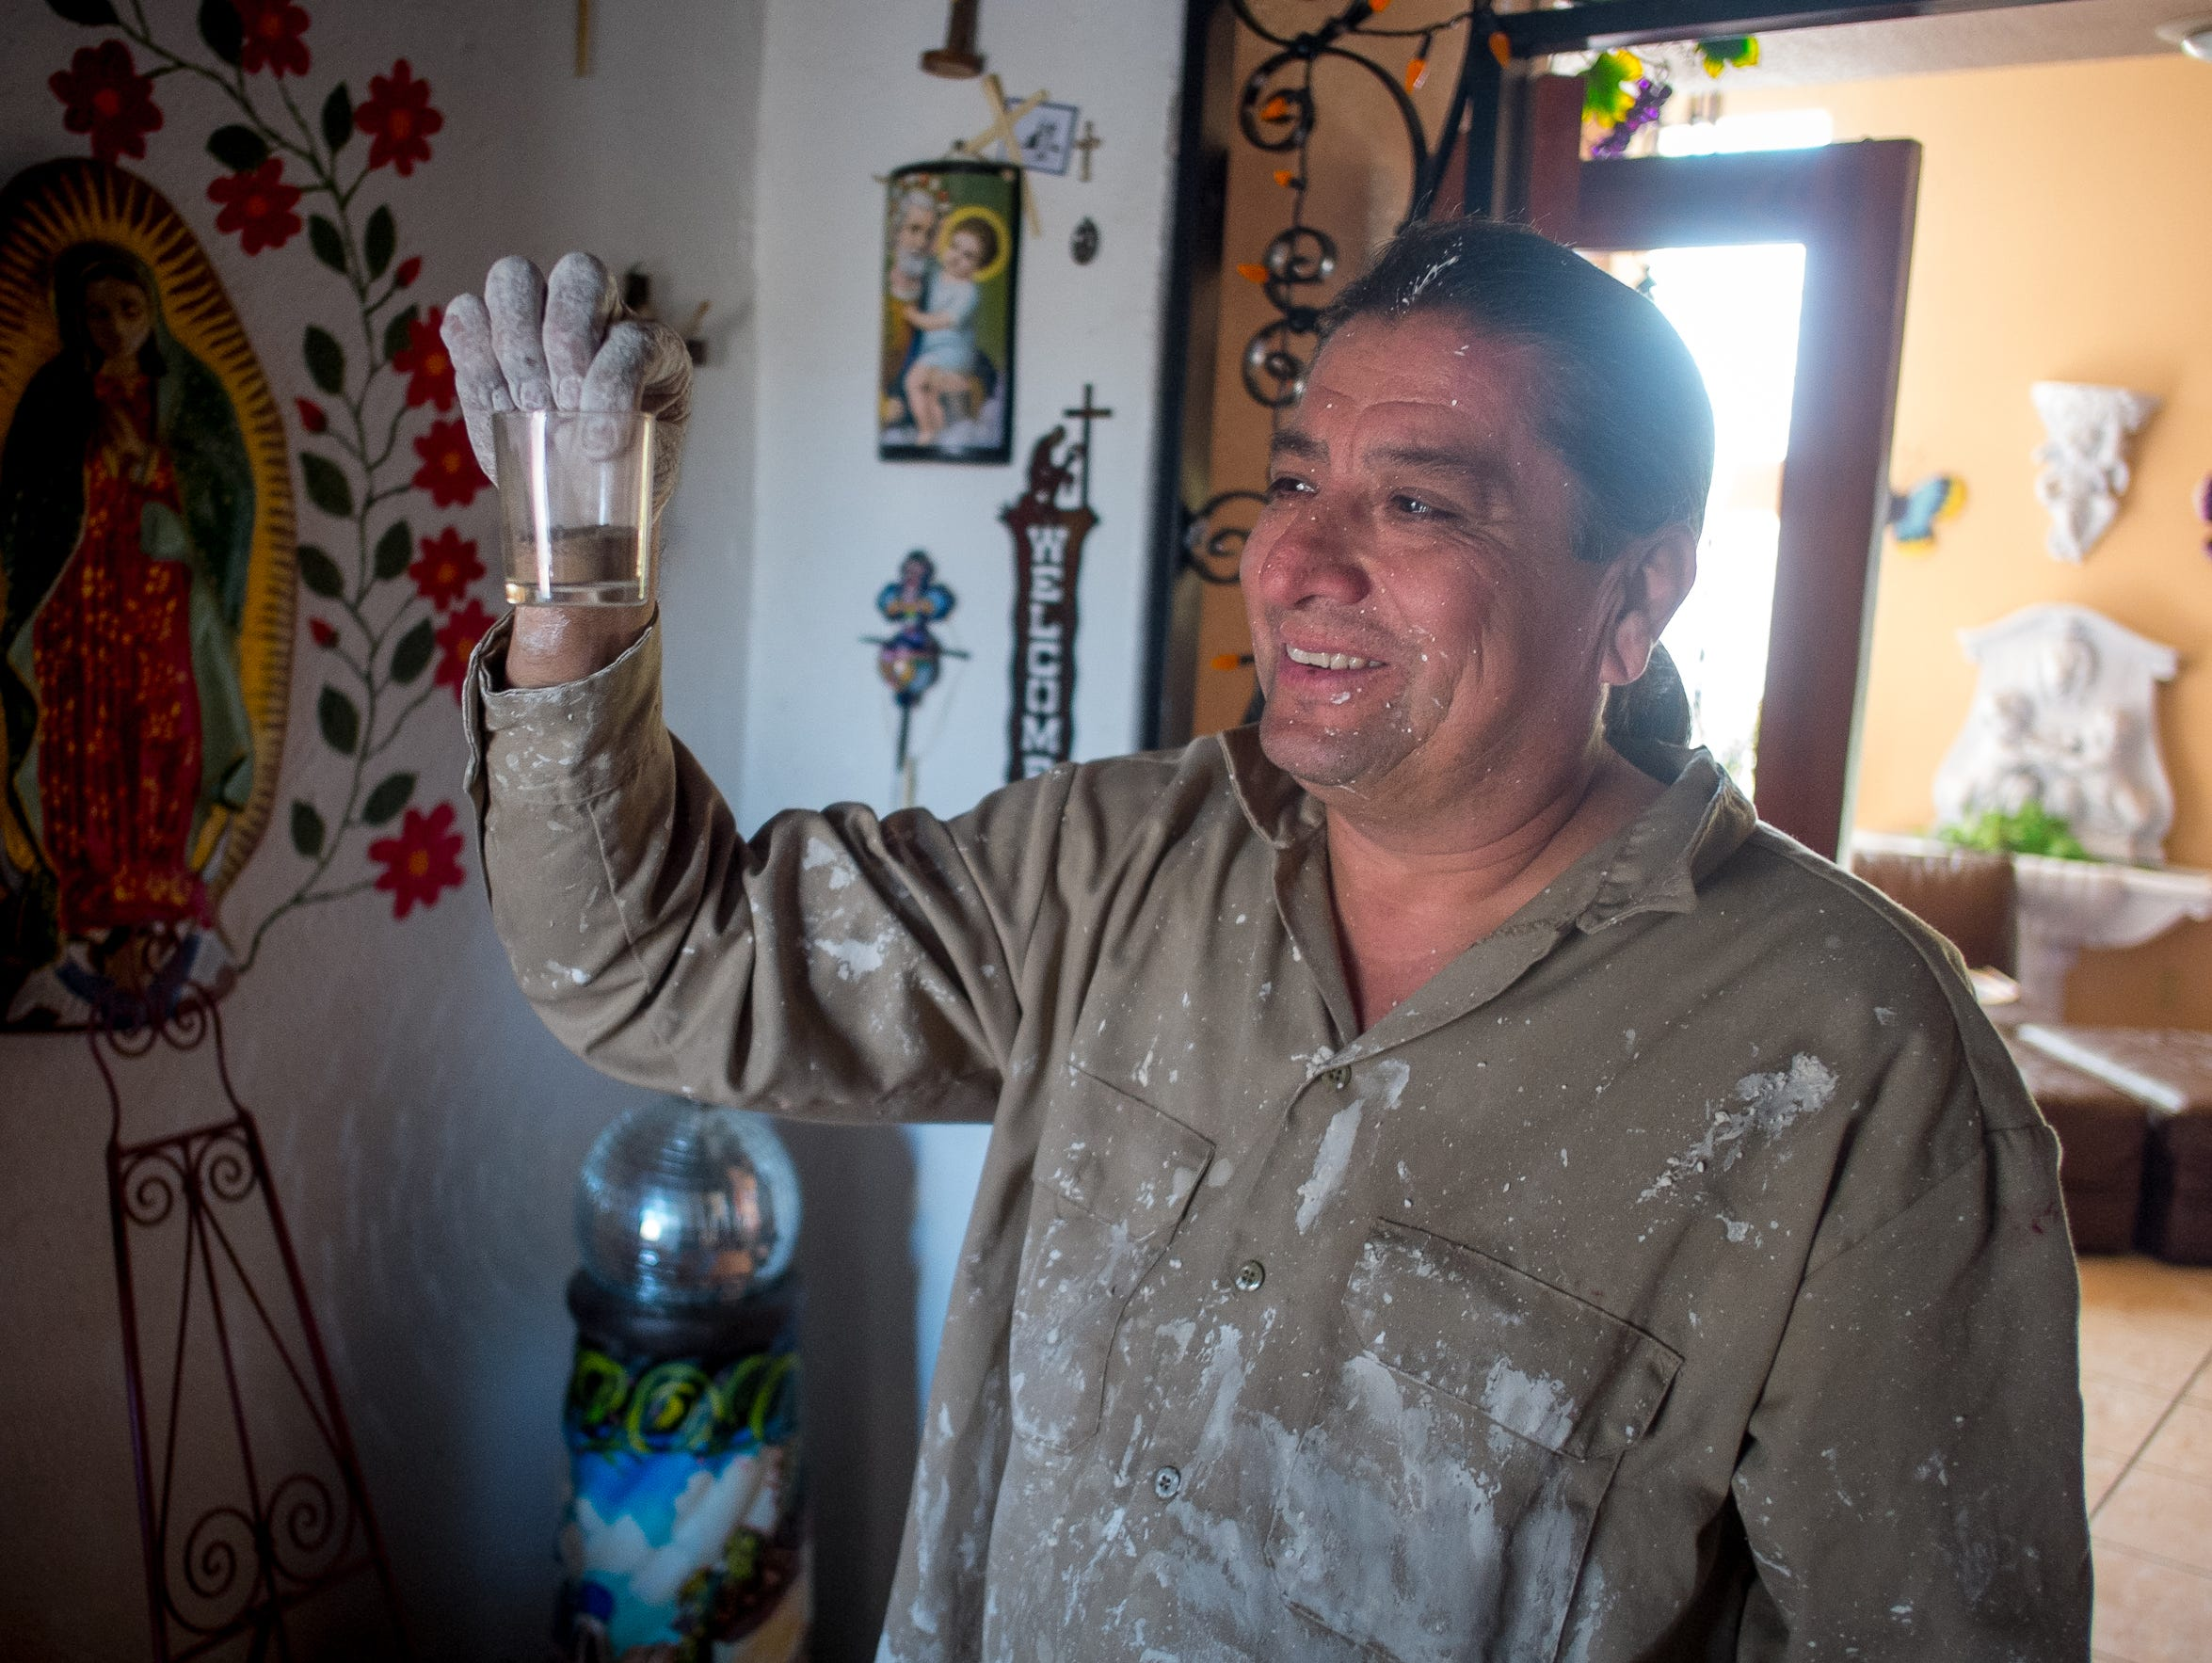 Current home owner Gerald Sánchez, holds up a container